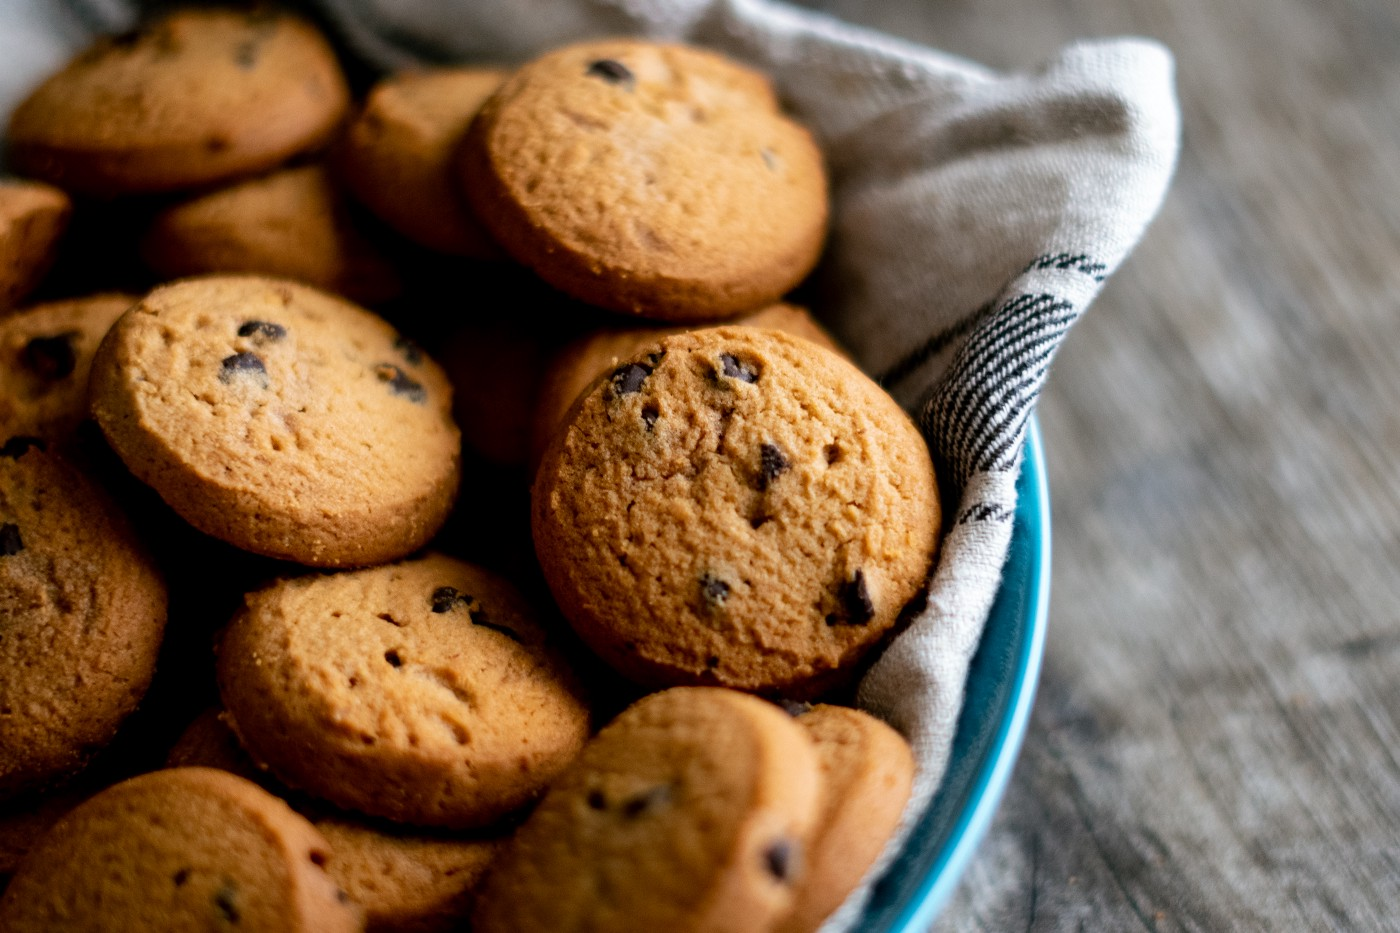 A plate of delicious chocolate chip cookies.